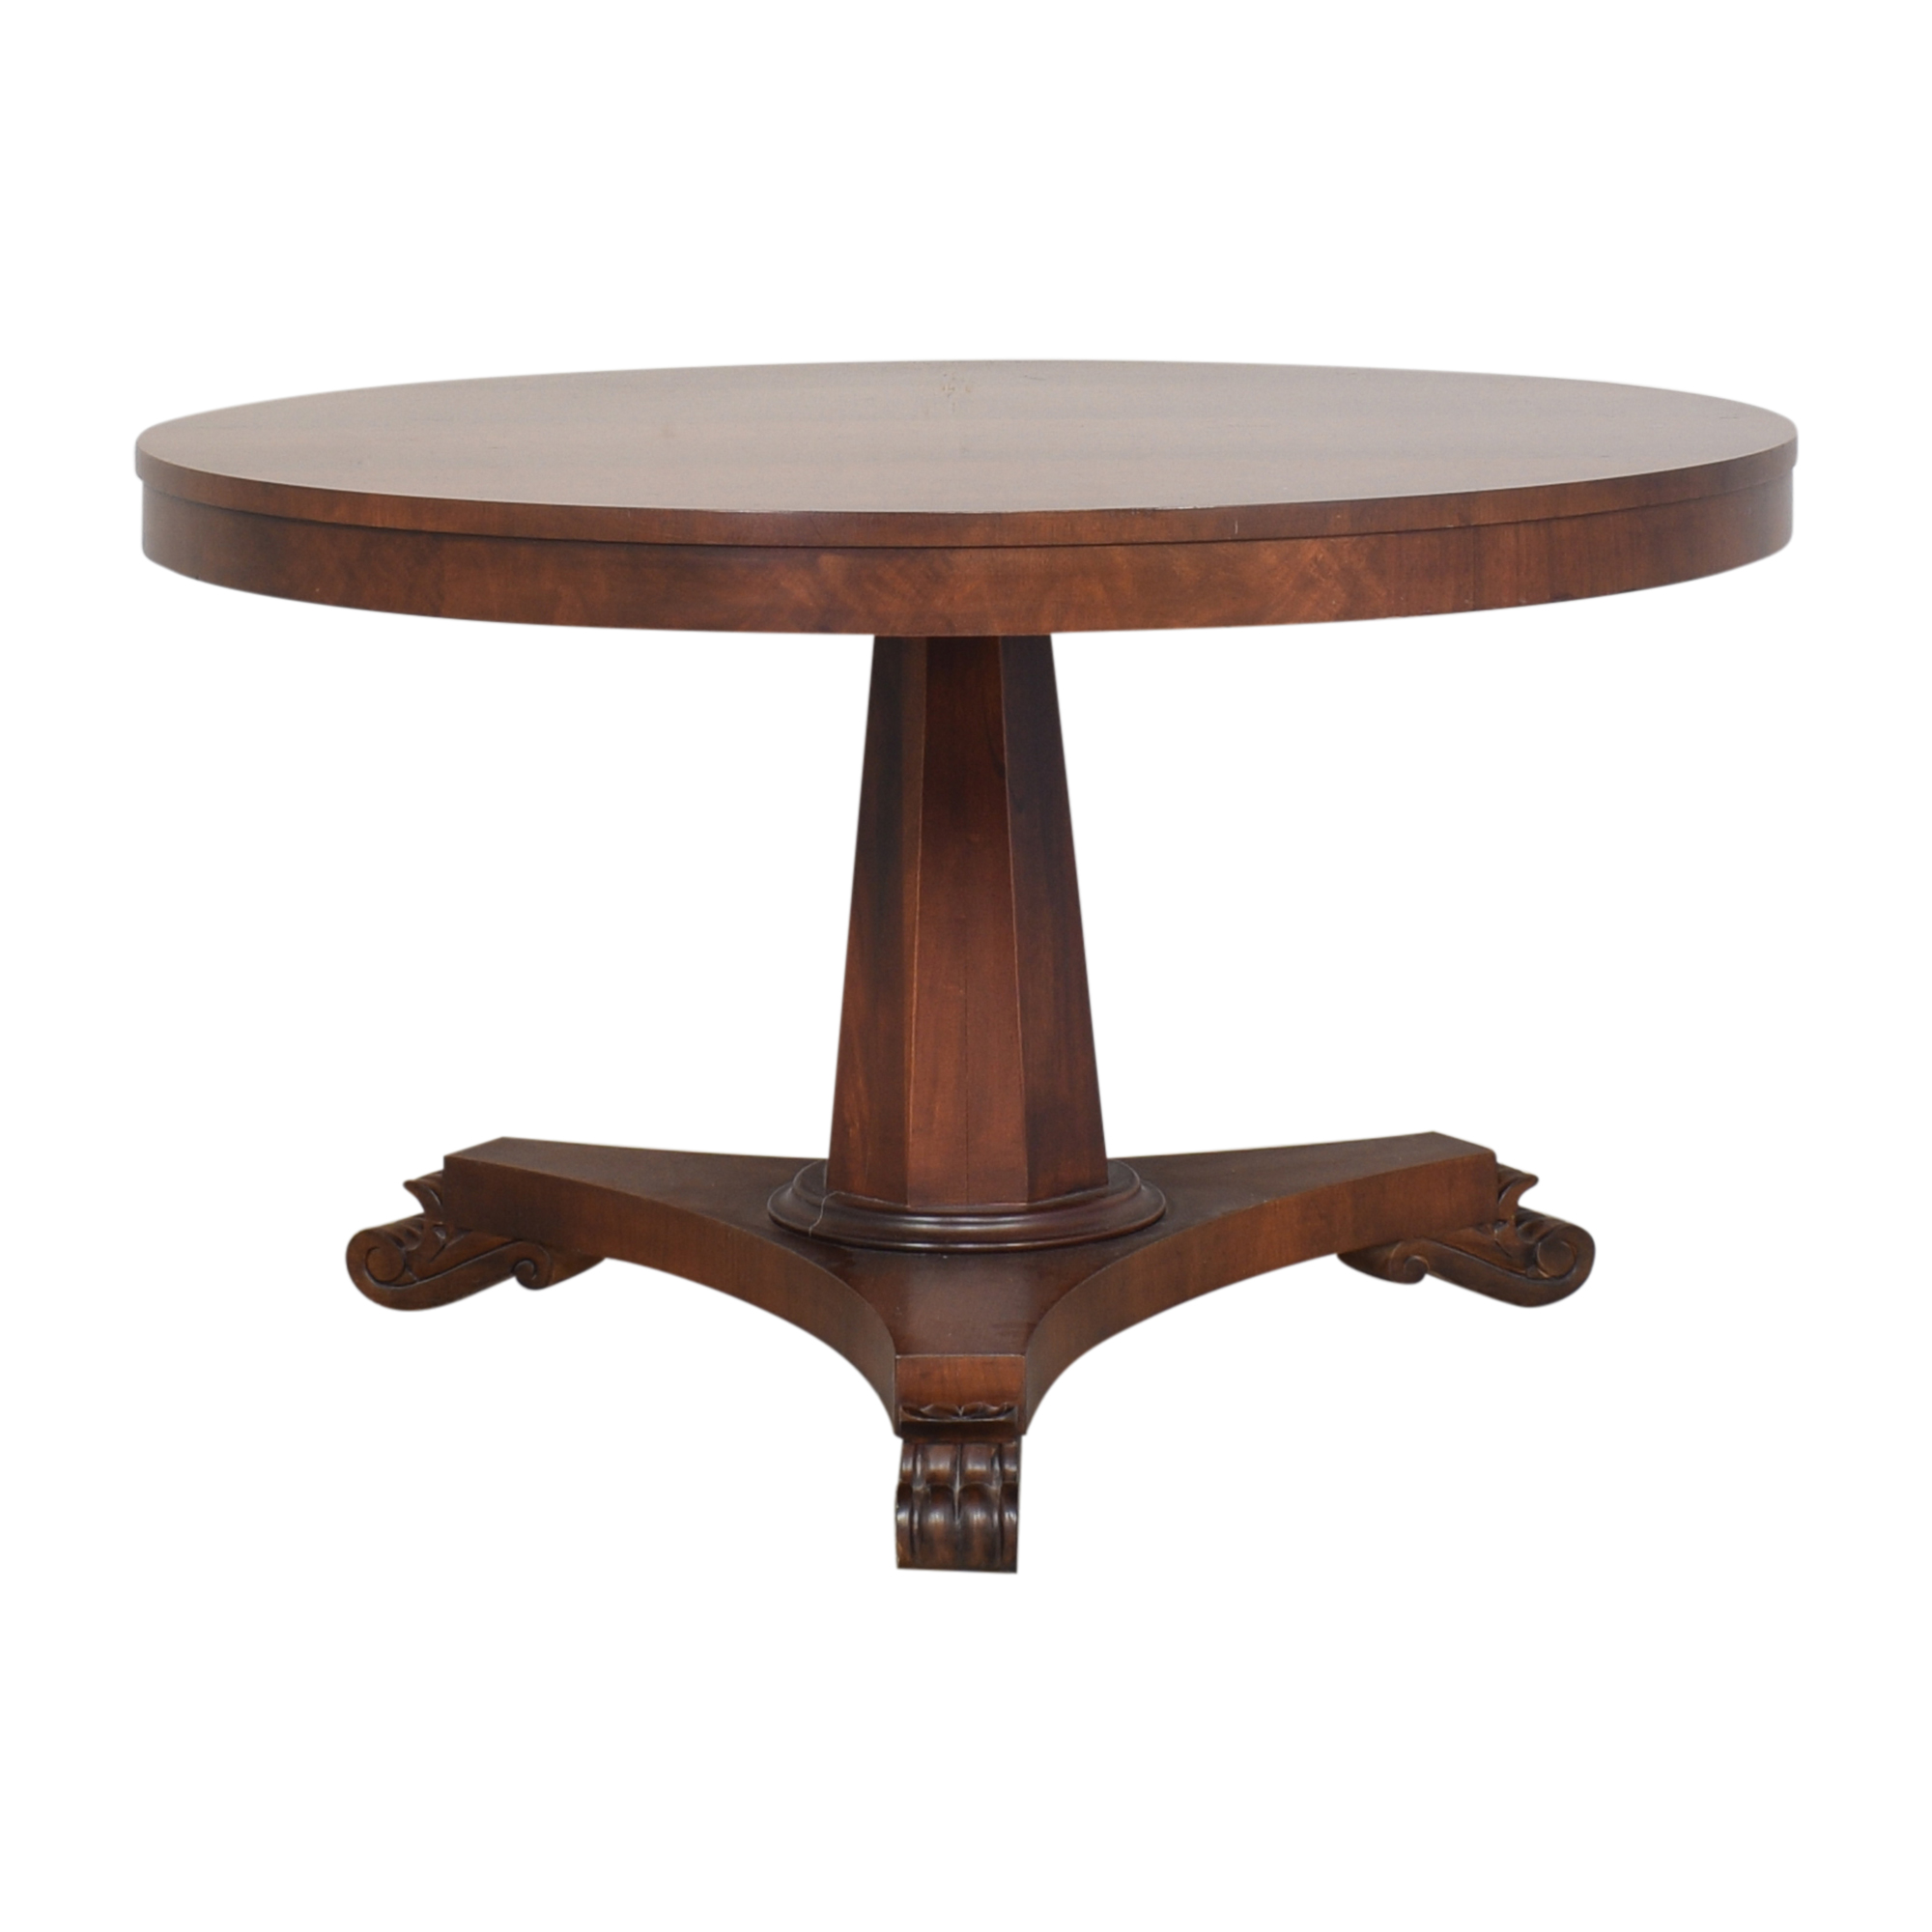 Ralph Lauren Home Ralph Lauren Home Round Clawfoot Dining Table Dinner Tables